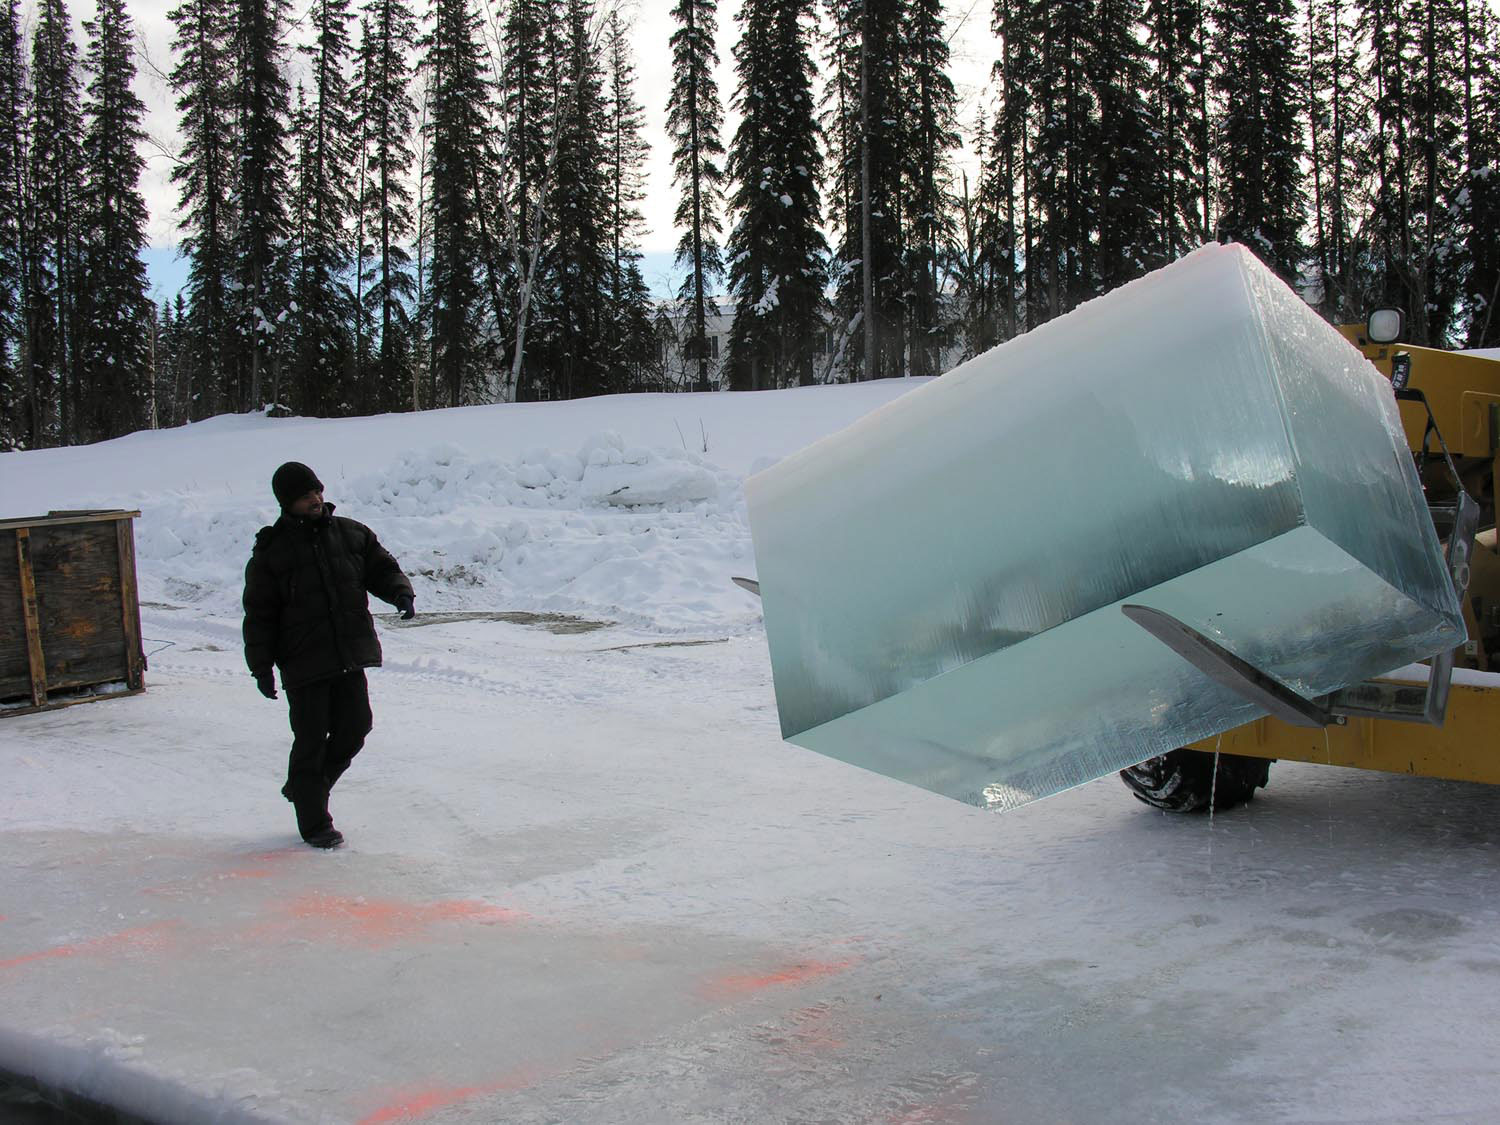 Excavating the ice block from a frozen river in Alaska. Photo by Chris Hoover, courtesy the artist